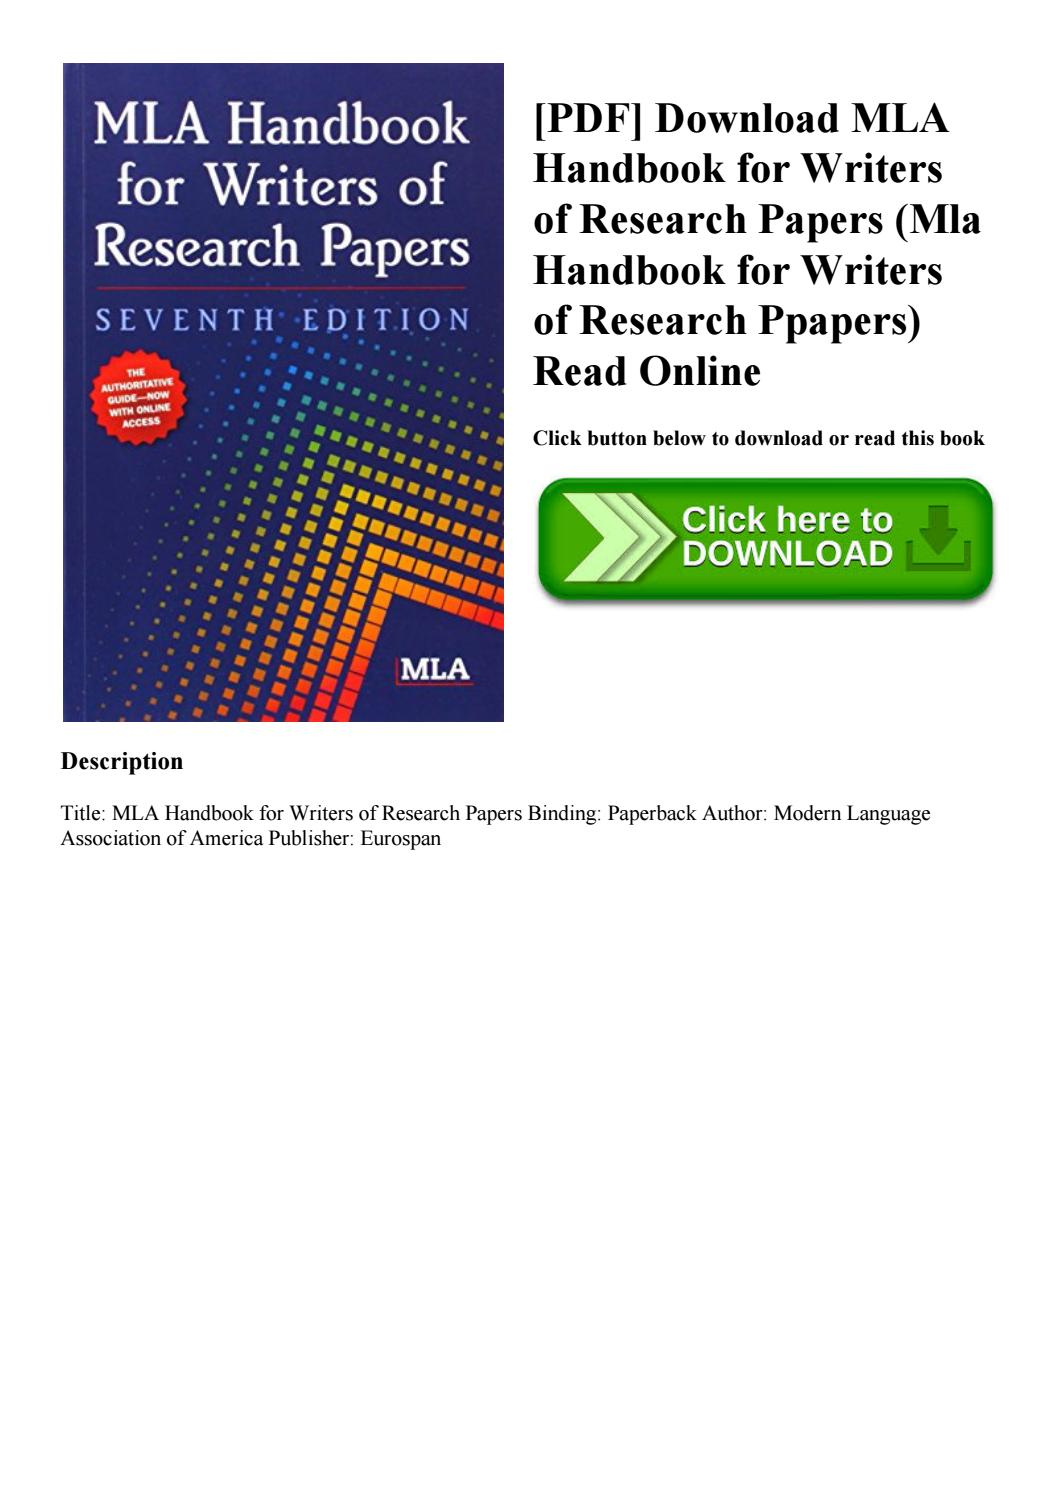 003 Page 1 Research Paper Mla Handbook For Writing Frightening Papers Writers Of 8th Edition Pdf Free Download According To The Full